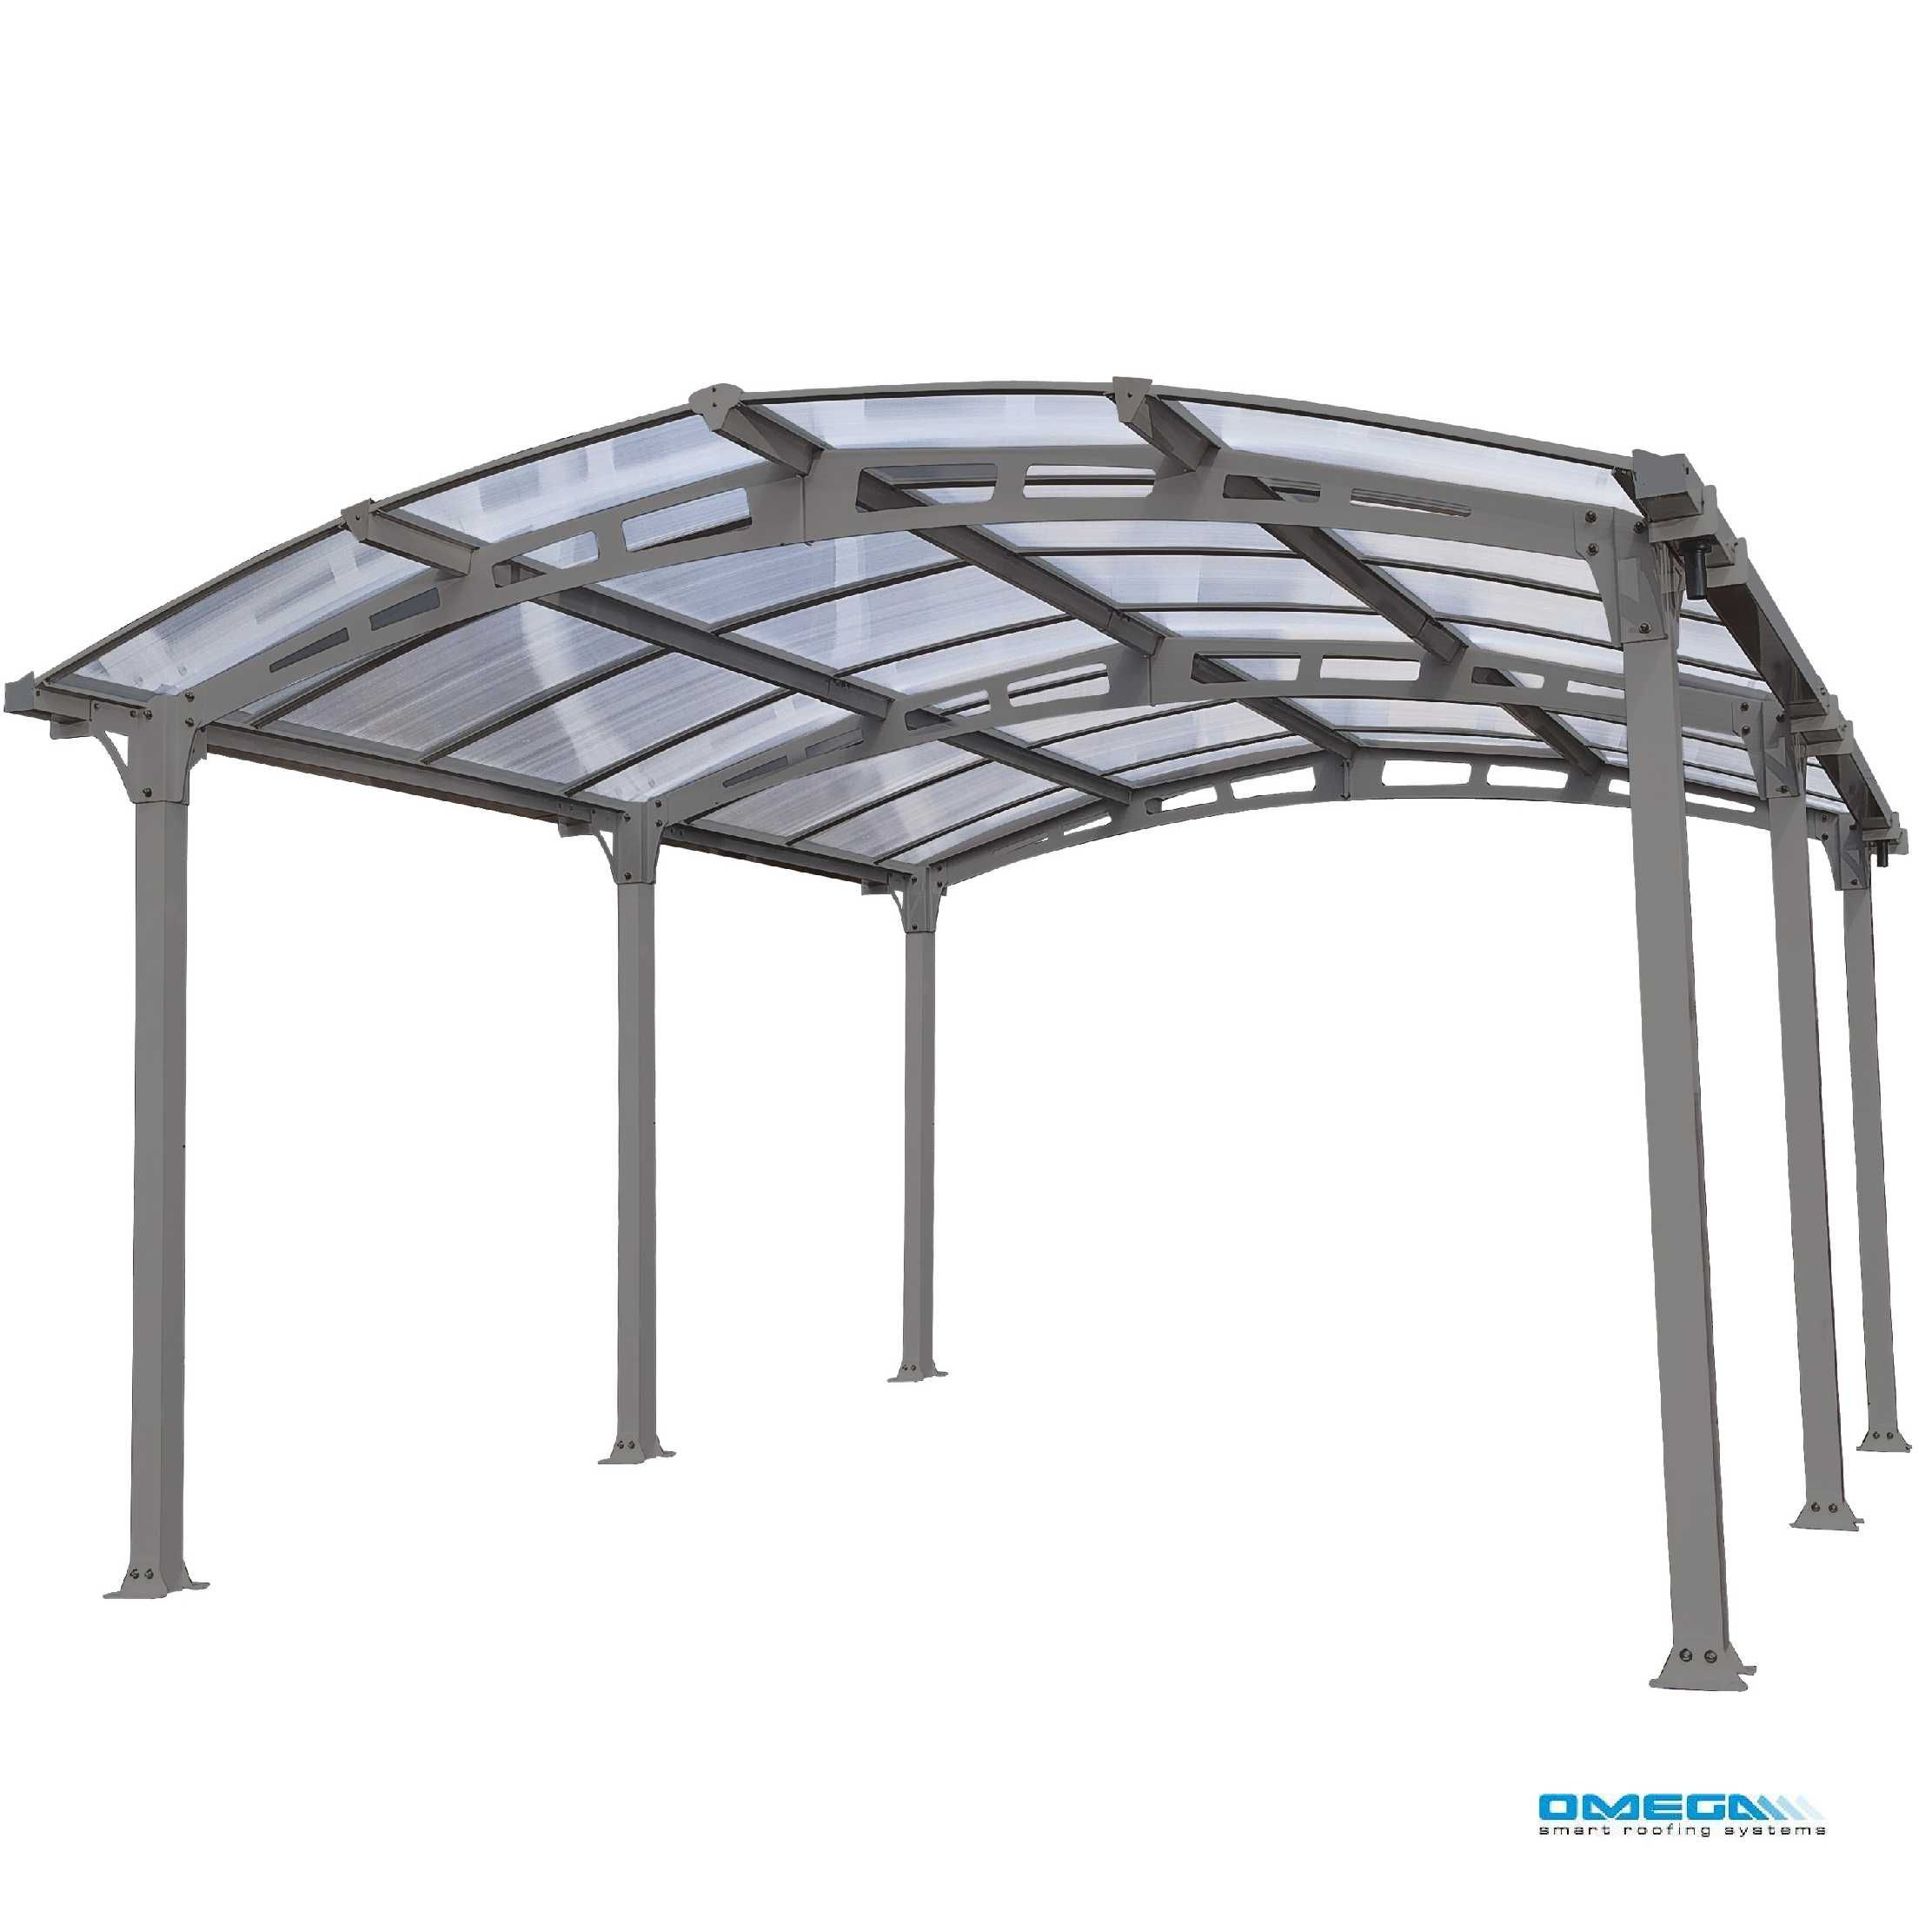 Arcadia 5000 Curved Freestanding canopy 5020 x 3620mm from